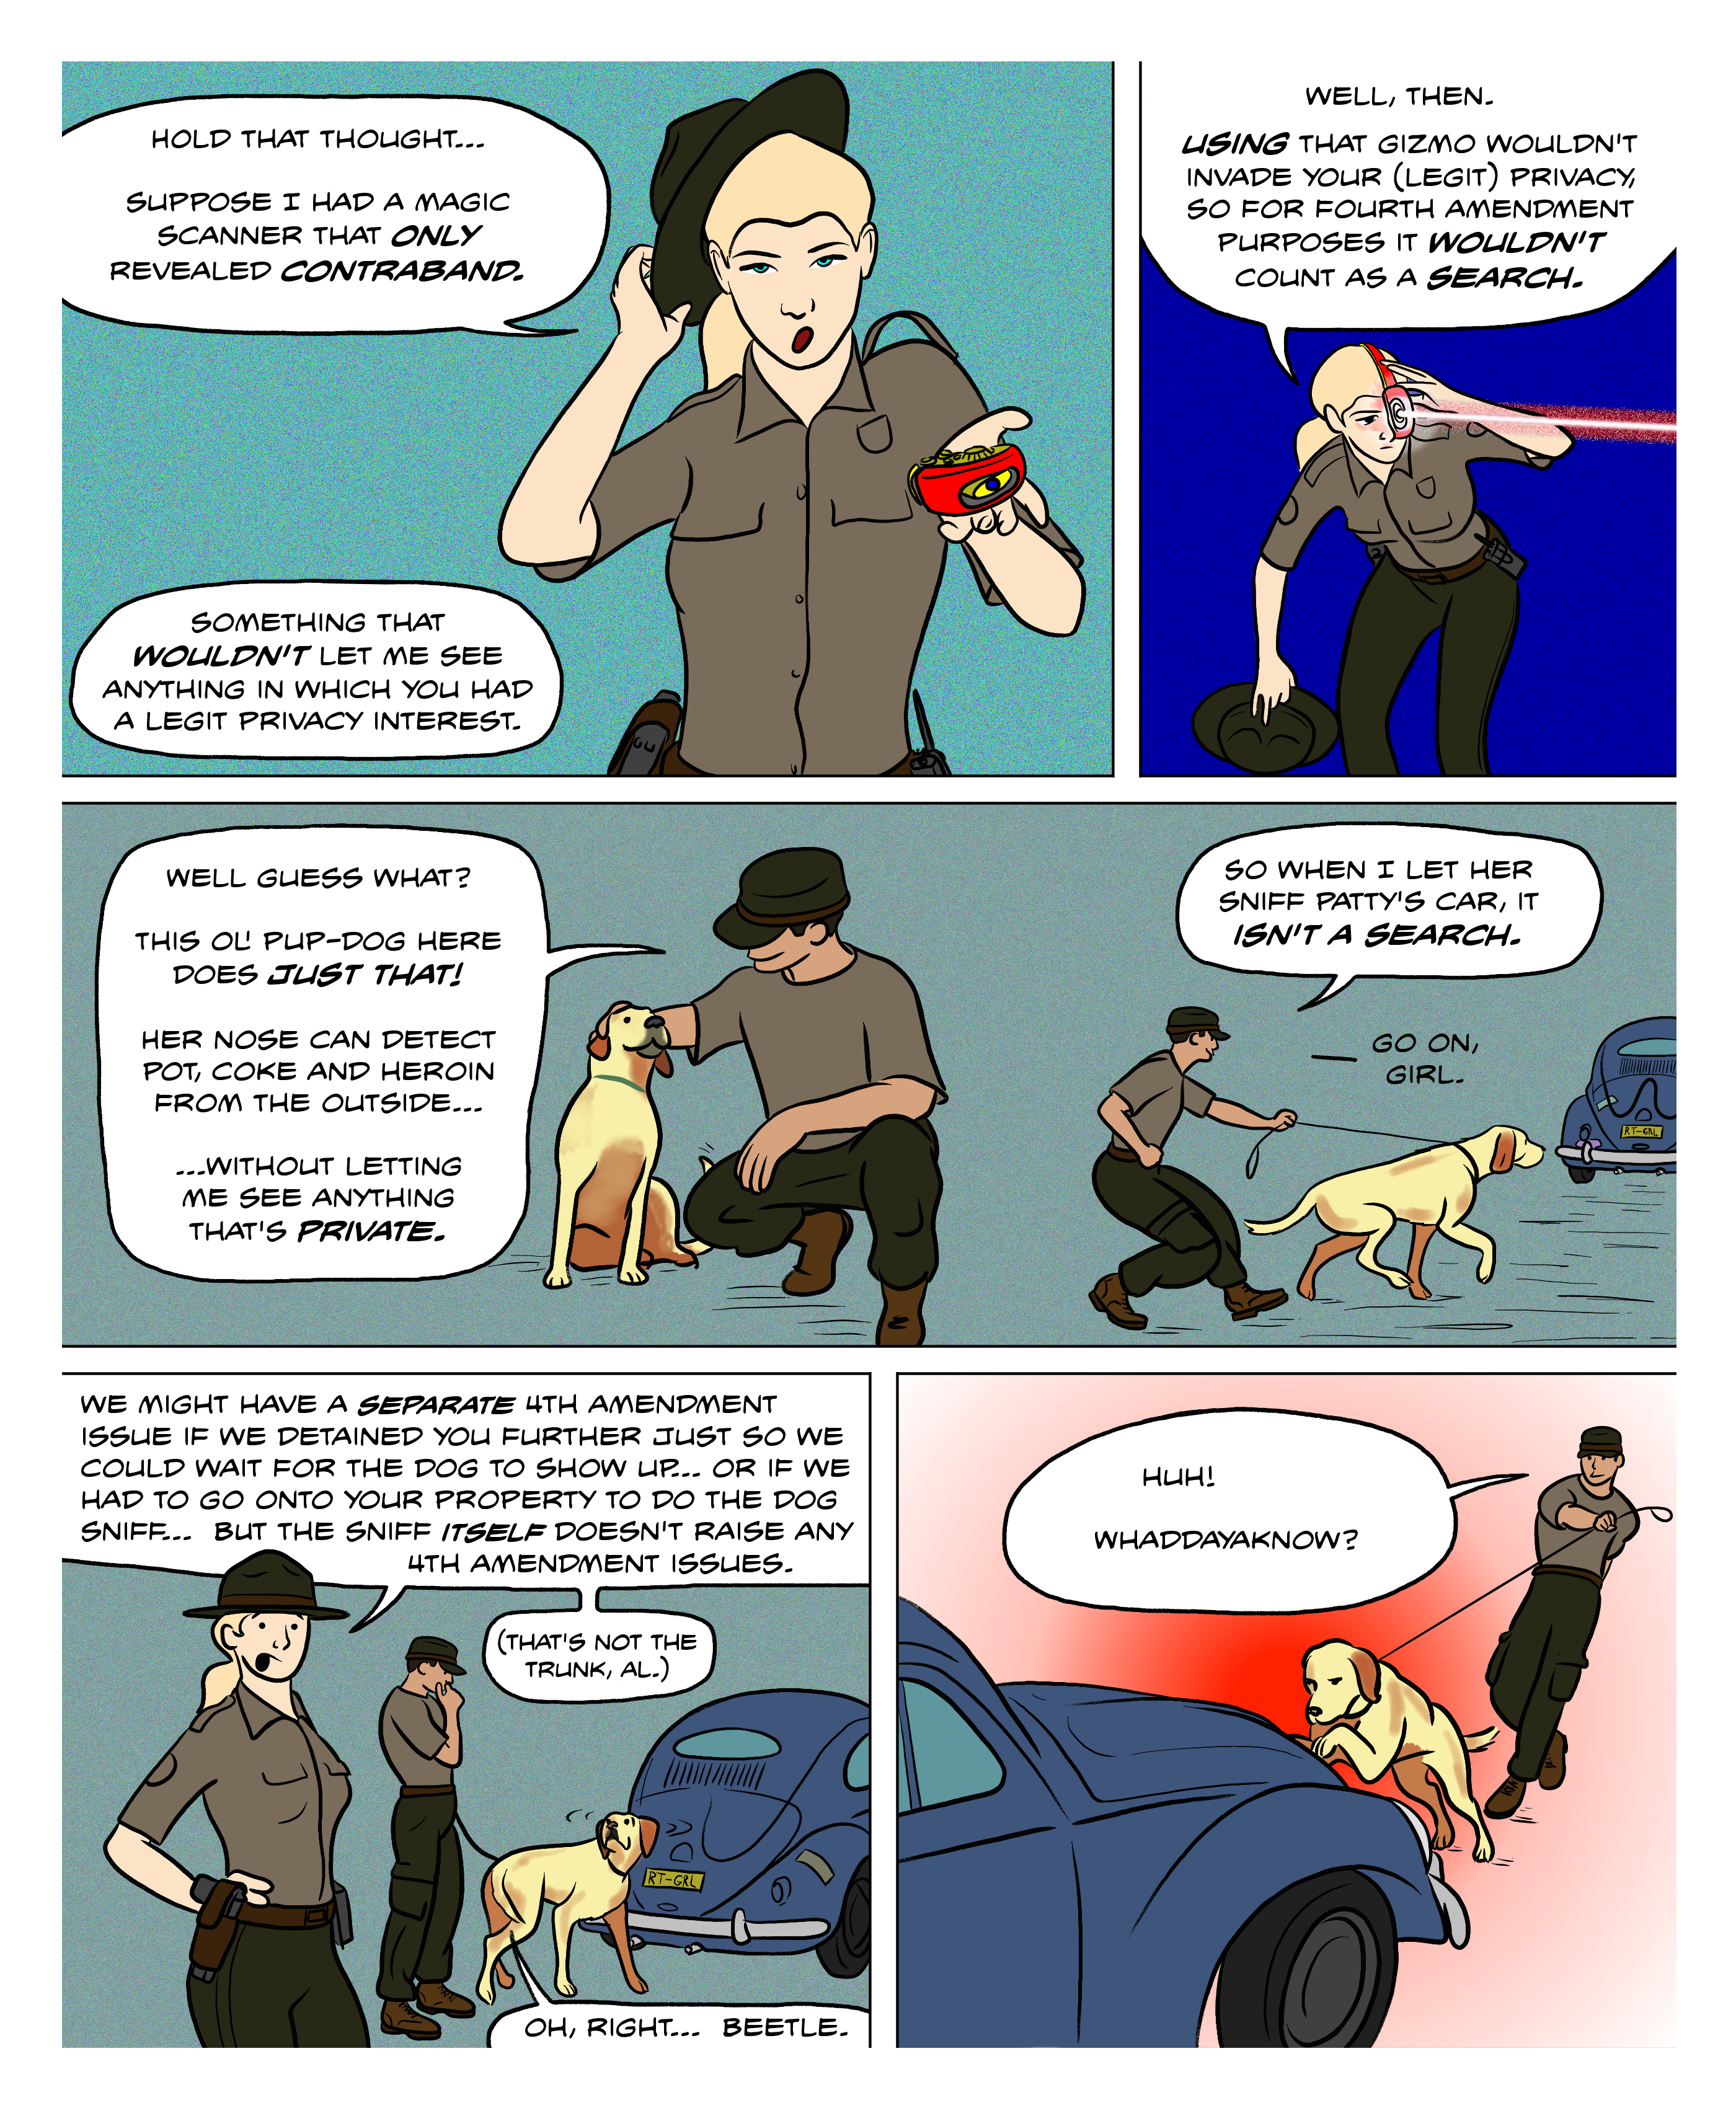 A device that magically only detects contraband would not constitute a Fourth Amendment search. Dog sniffs are treated like that, and don't count as a search. The police cannot detain you further just to wait for a K9 to show up, nor can they trespass onto your property to let the dog sniff your door, but the sniff itself doesn't raise any Fourth Amendment issues.